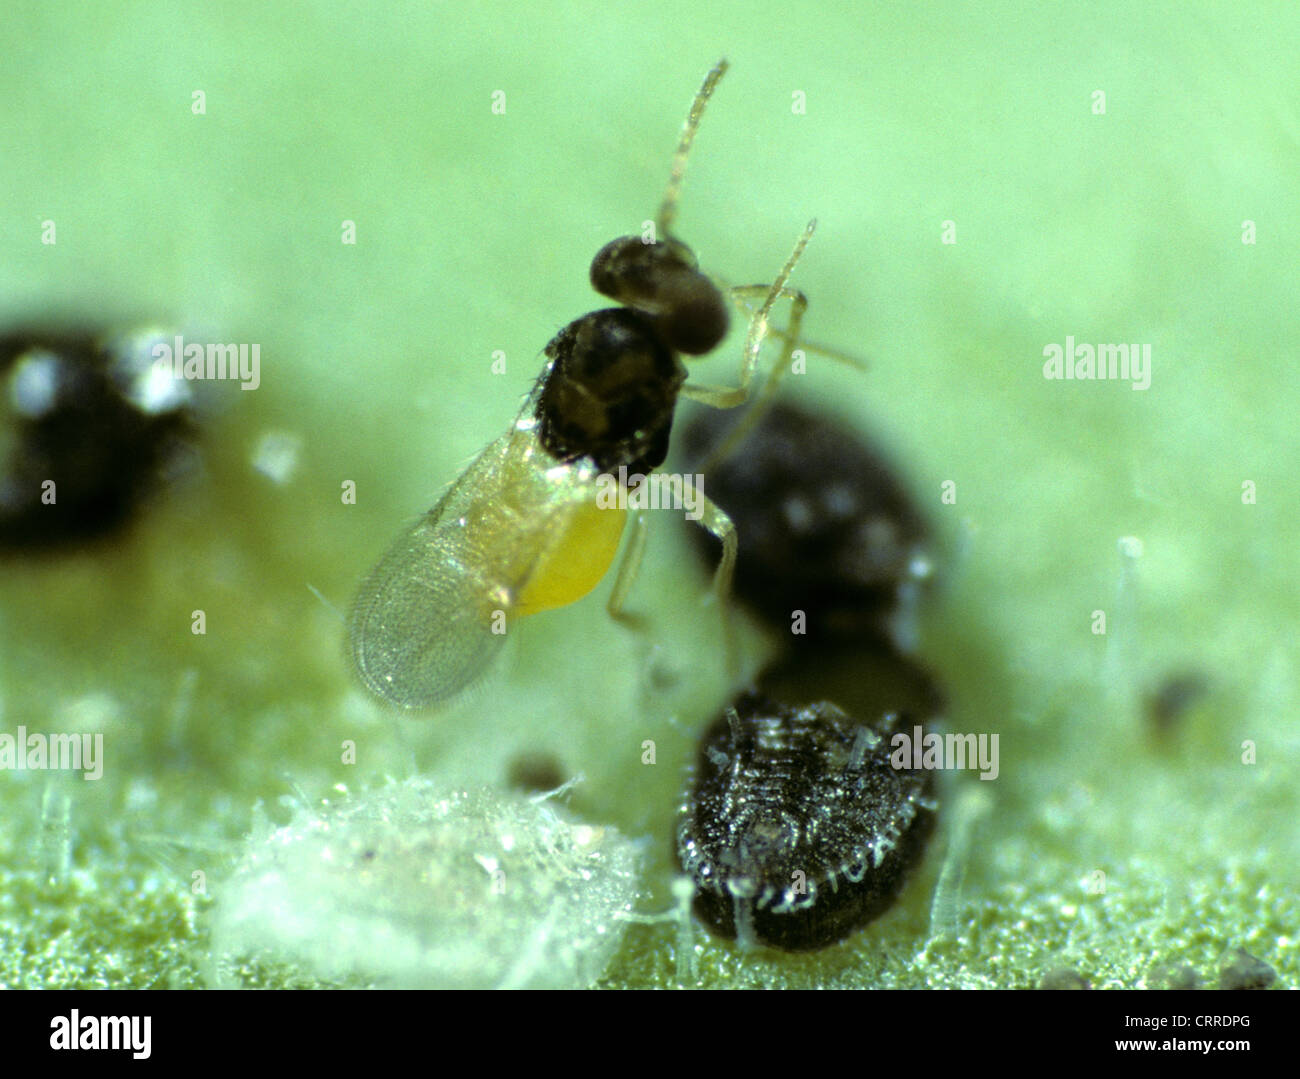 Parasitoid wasp Encarsia formosa with whitefly scales - Stock Image